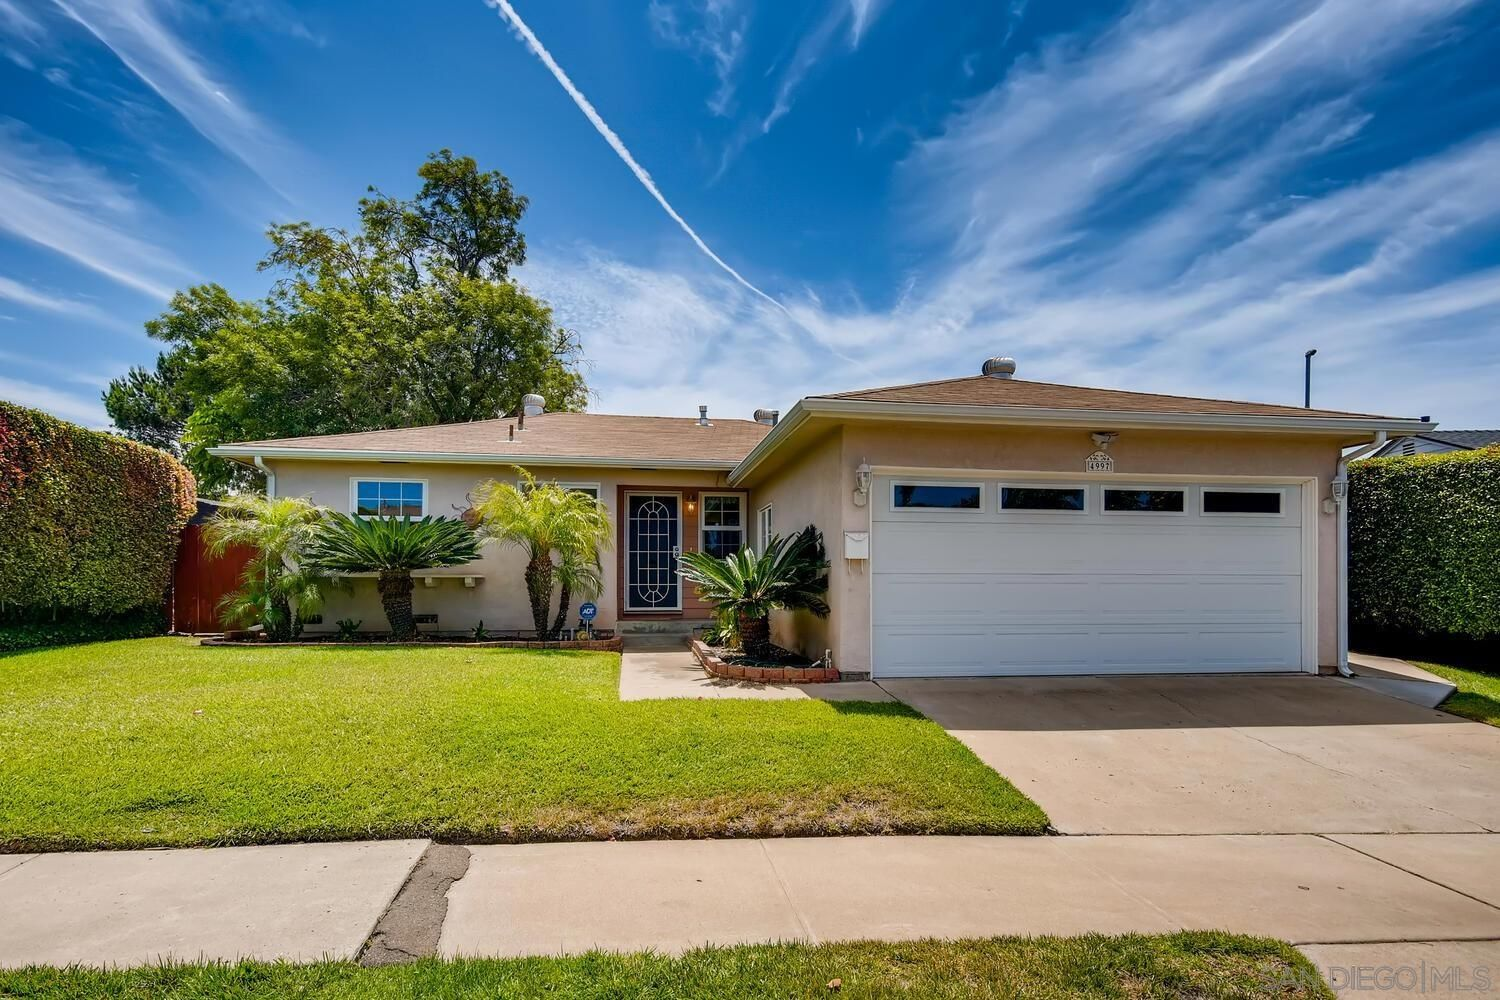 Main Photo: DEL CERRO House for sale : 3 bedrooms : 4997 TWAIN AVE in SAN DIEGO